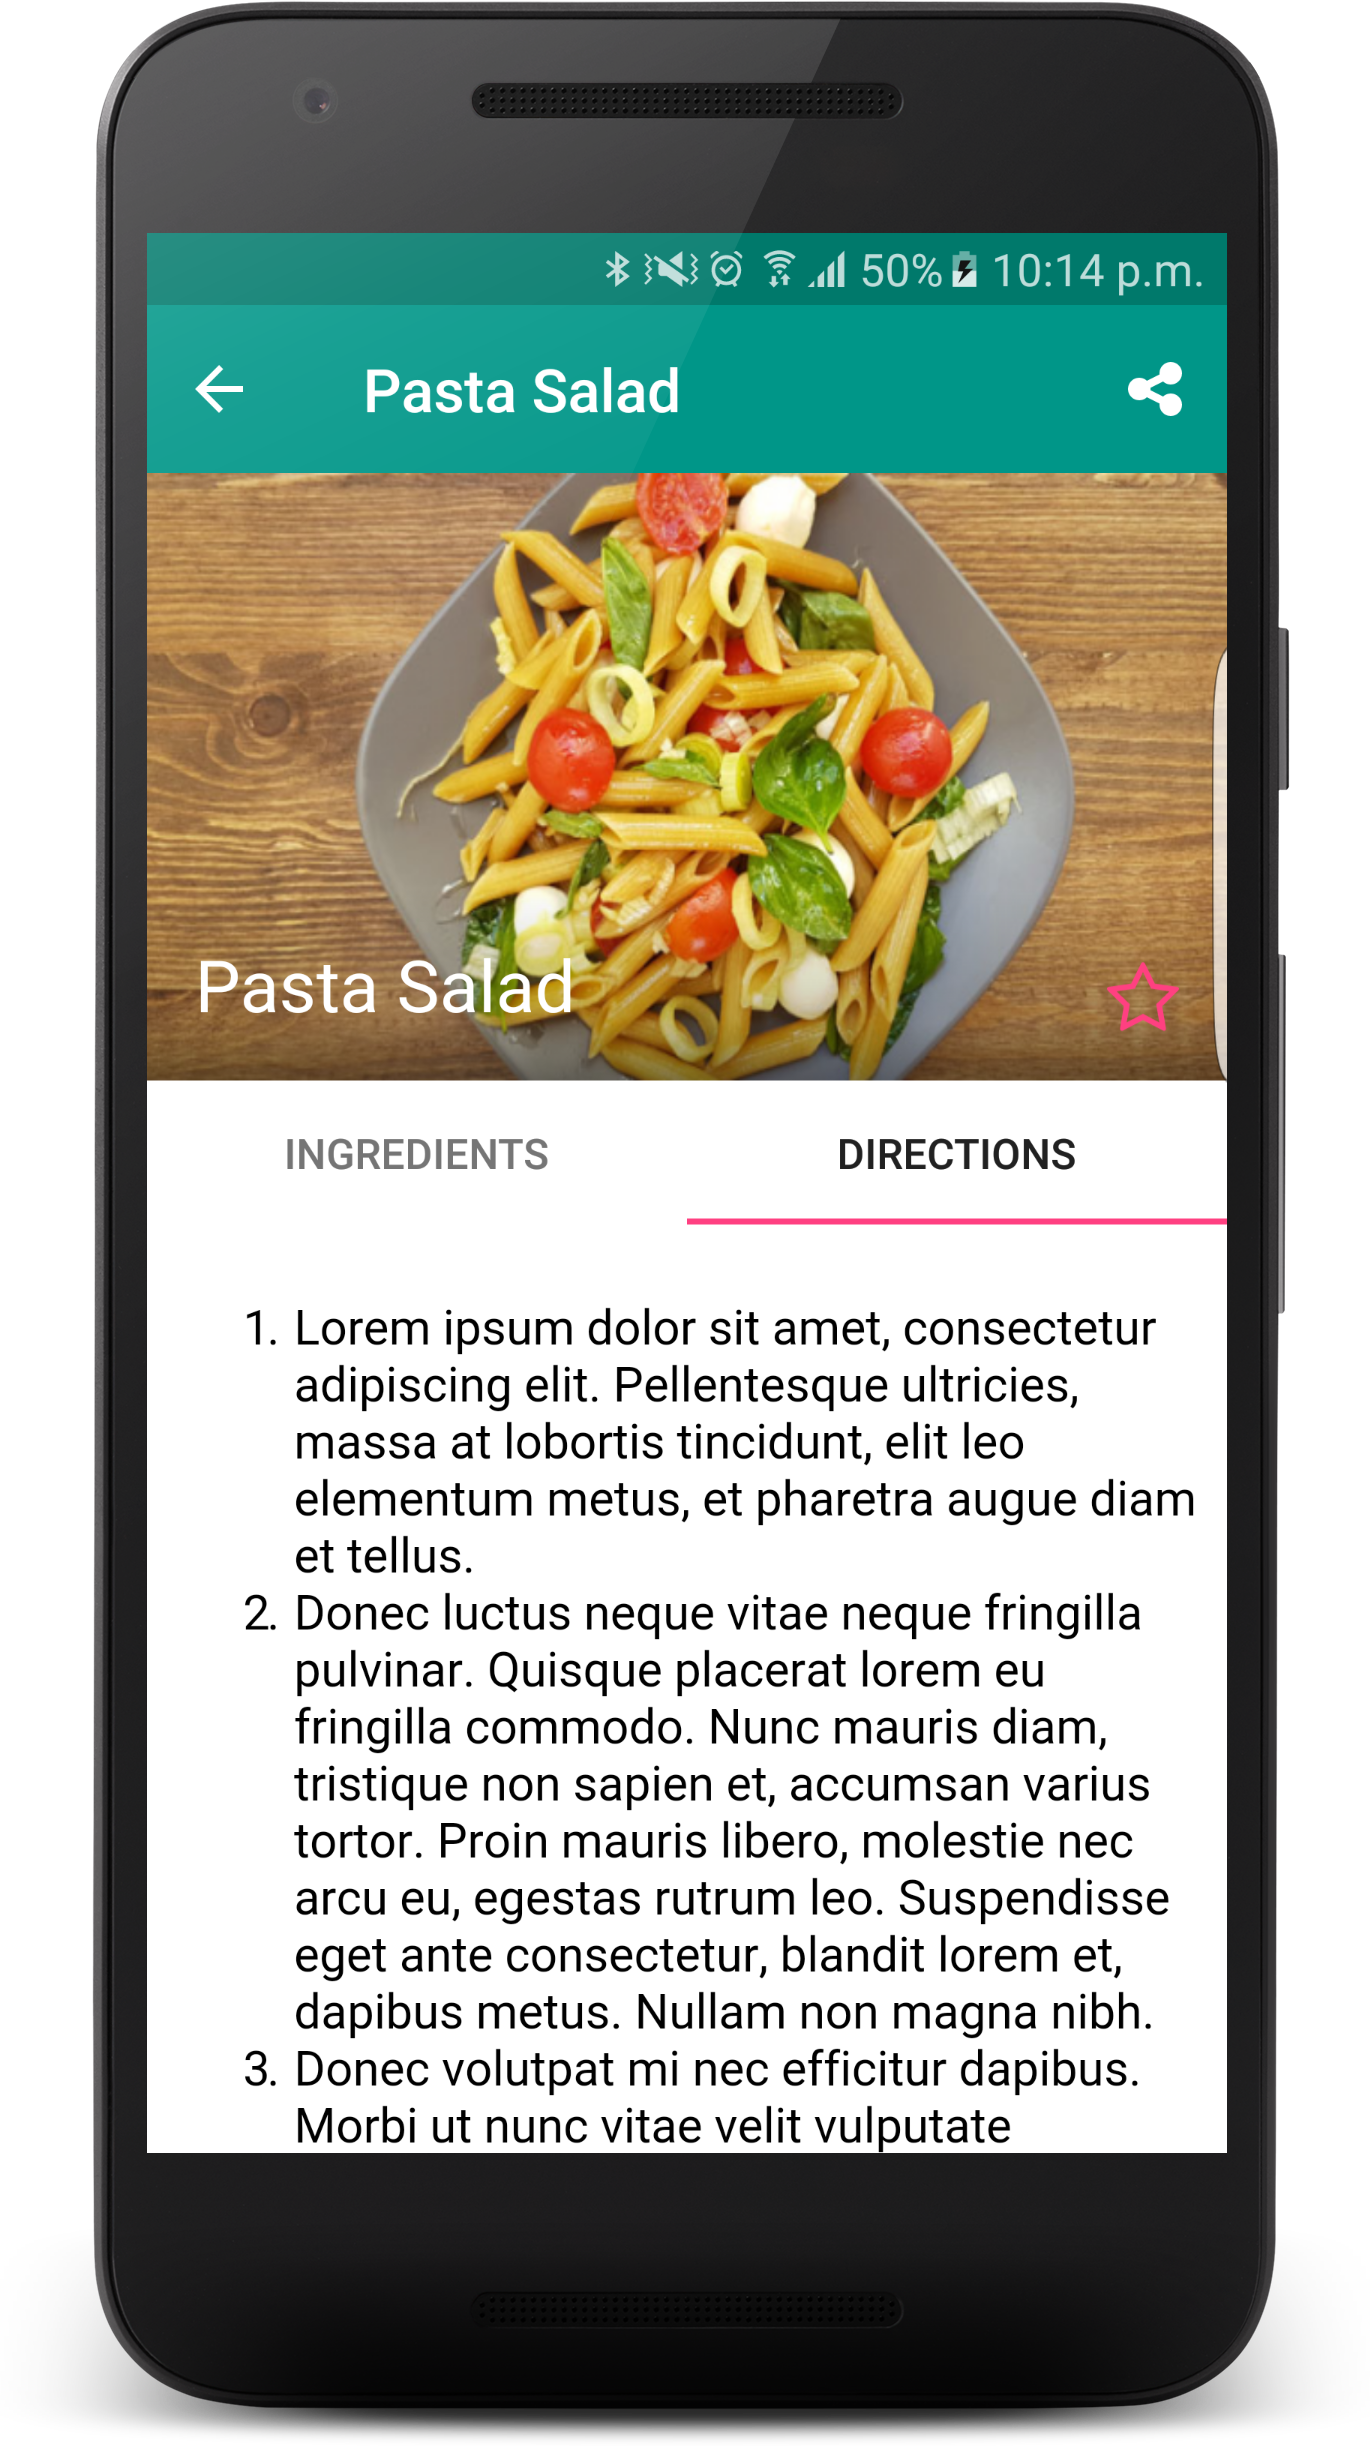 Ultimate recipe app template by neurondigital codecanyon ultimate recipe app template forumfinder Choice Image